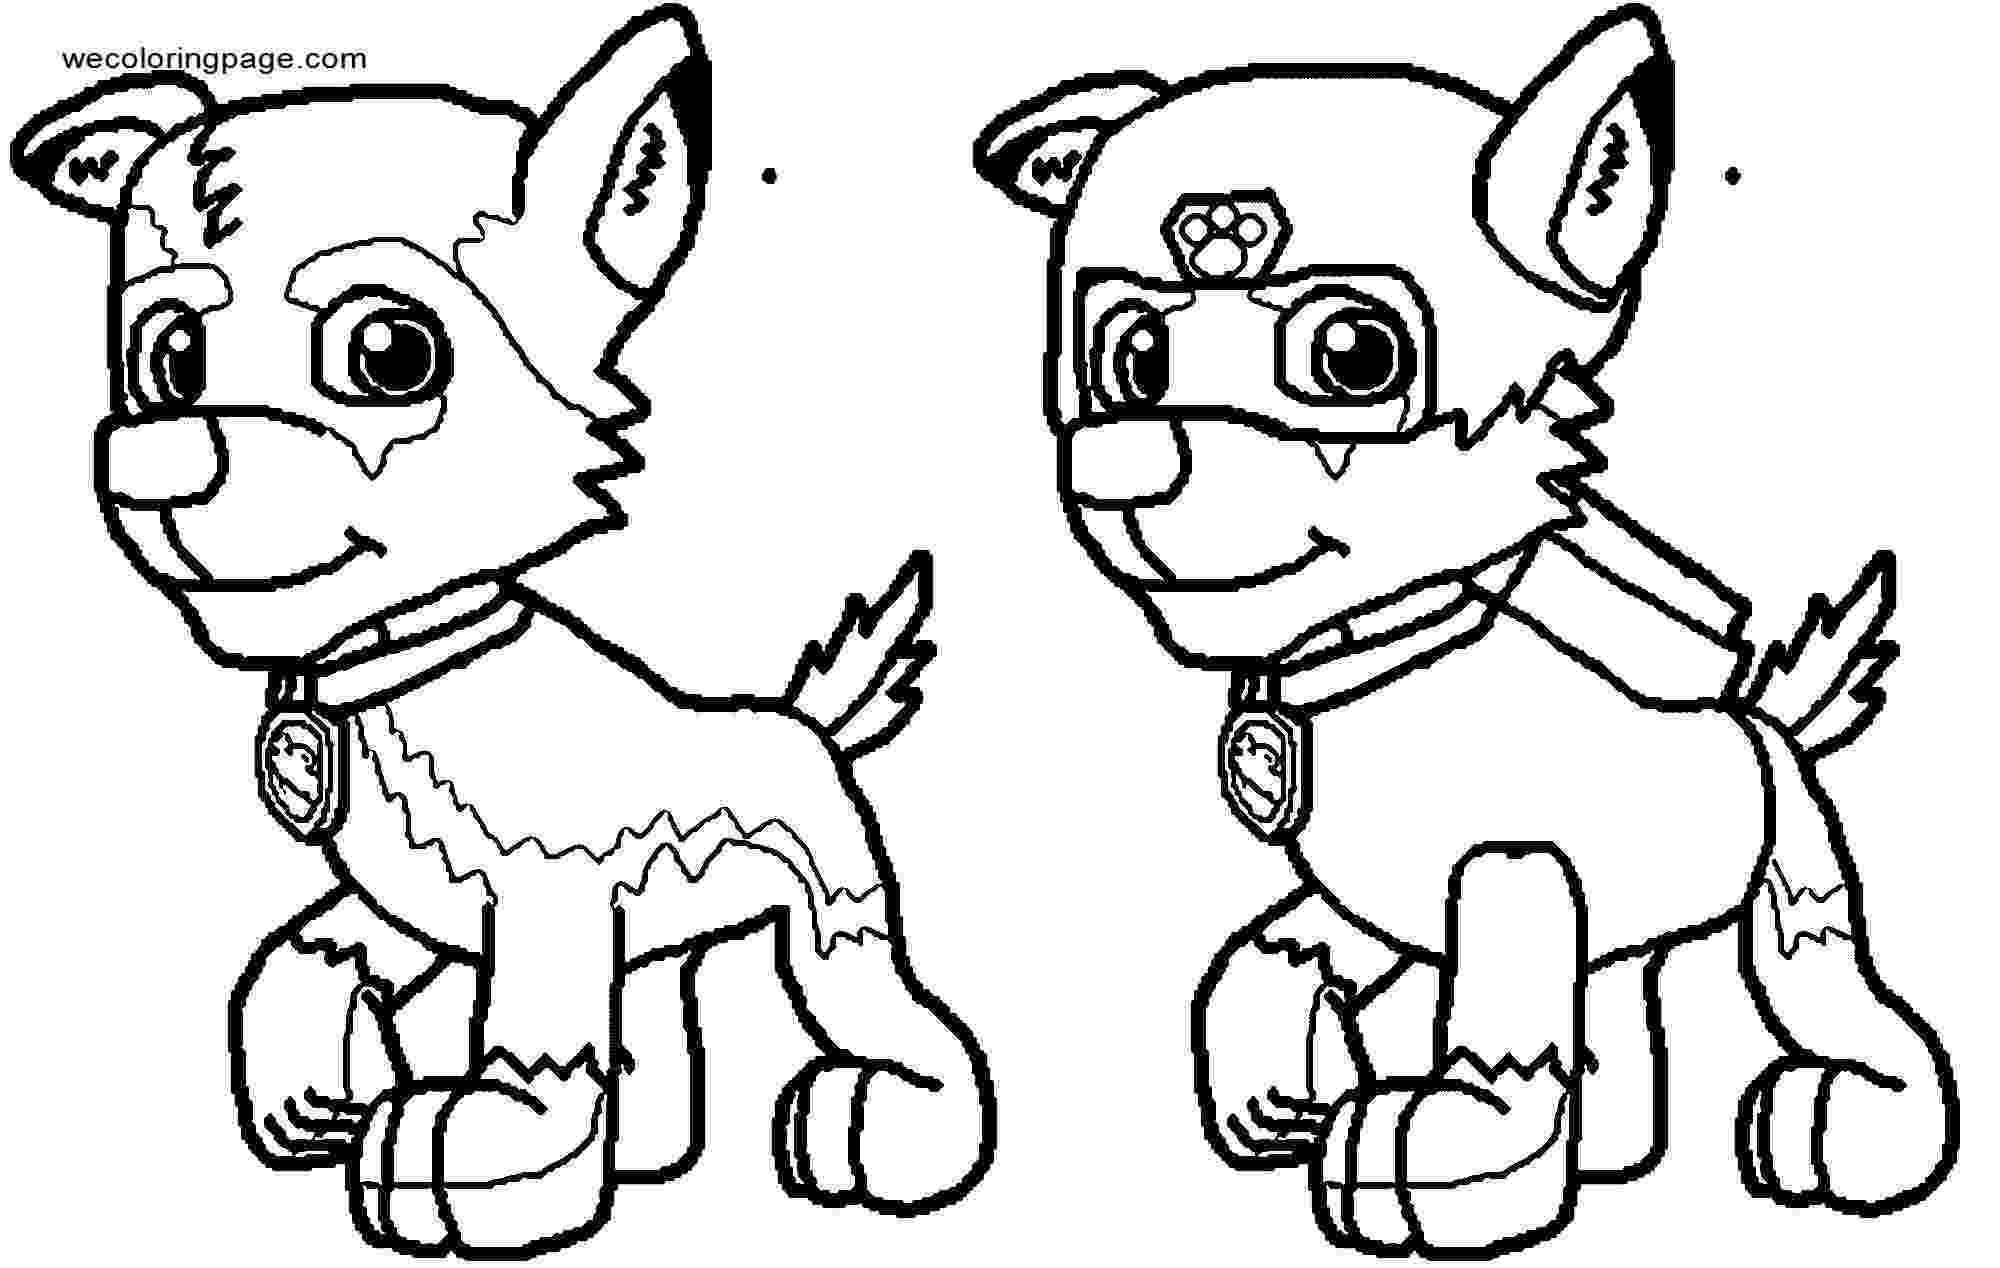 pup patrol coloring pages search results paw patrol pictures to color jett39s 4th coloring pages patrol pup